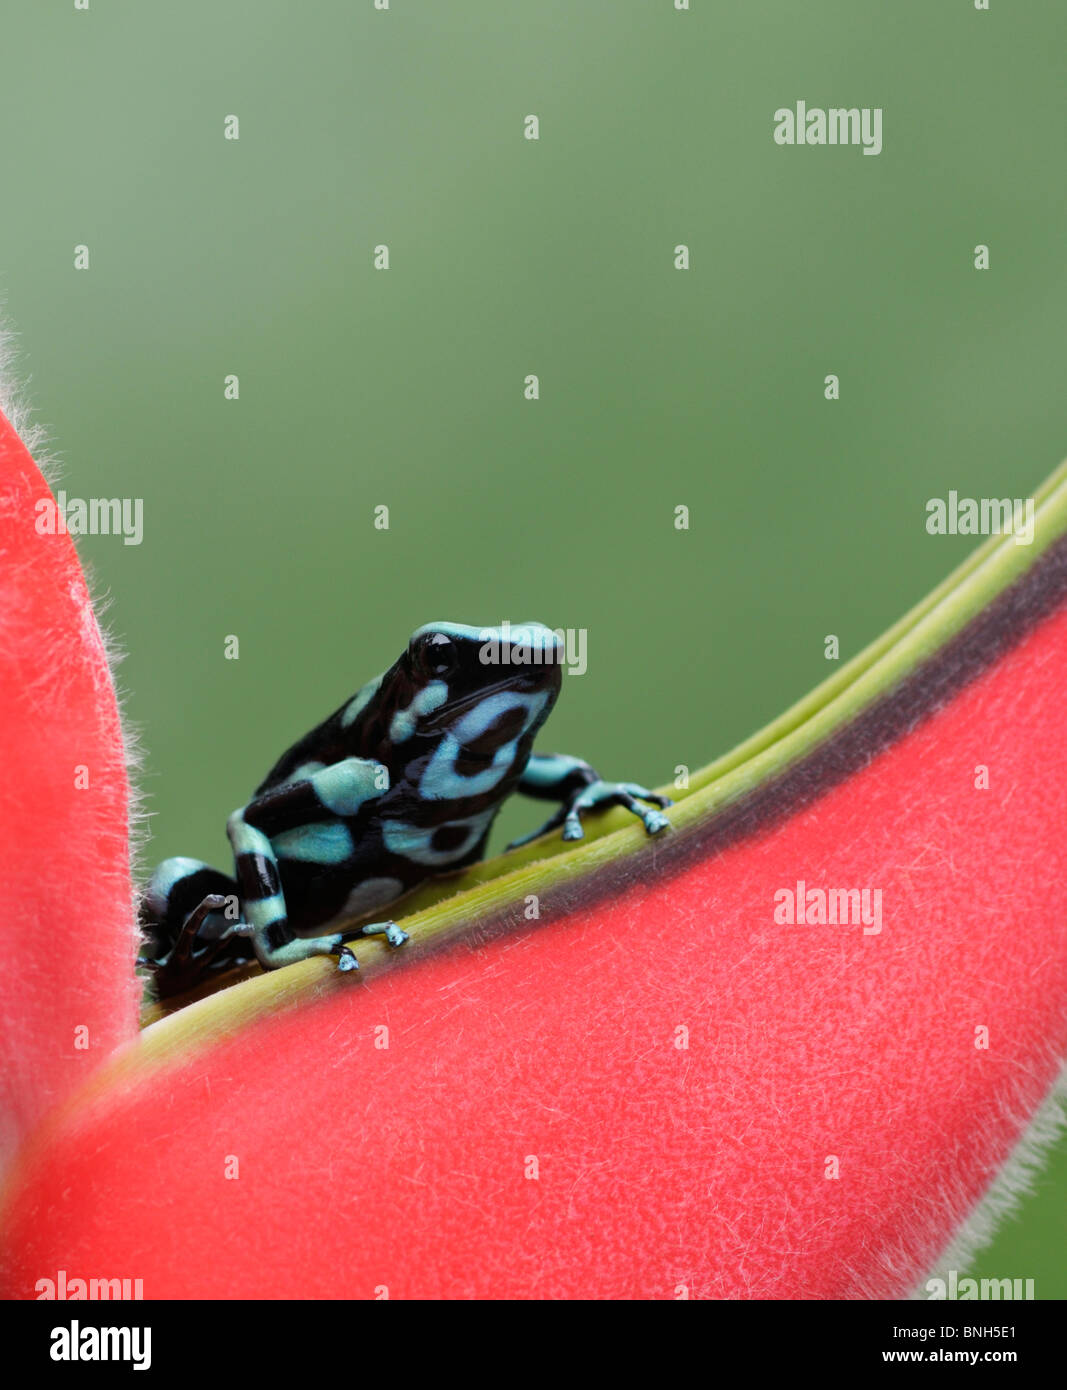 Green and Black poison dart frog, Dendrobates auratus, Selva Verde, Costa Rica Photo Stock